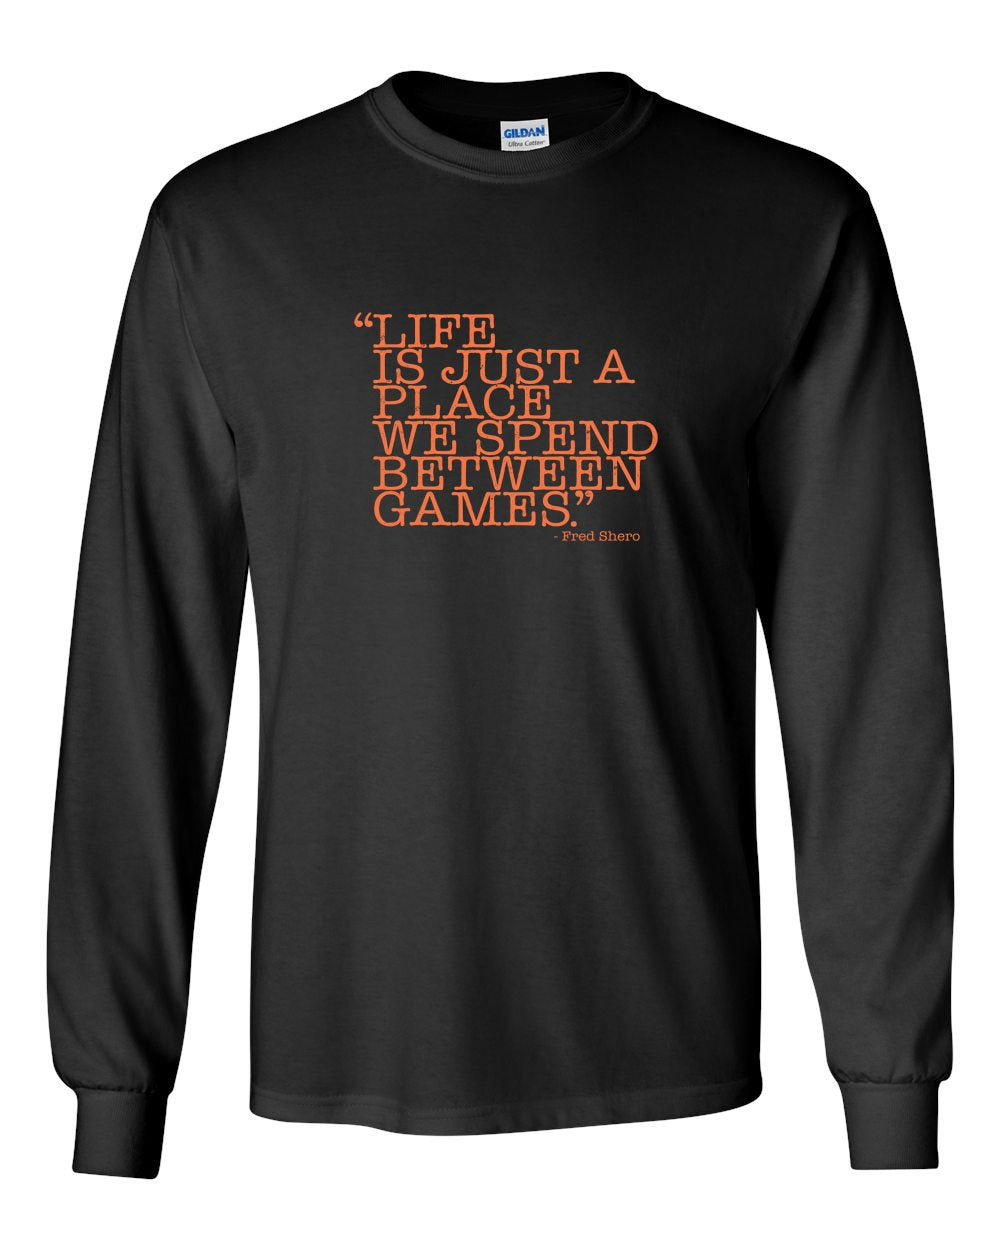 Between Games MENS Long Sleeve Heavy Cotton T-Shirt